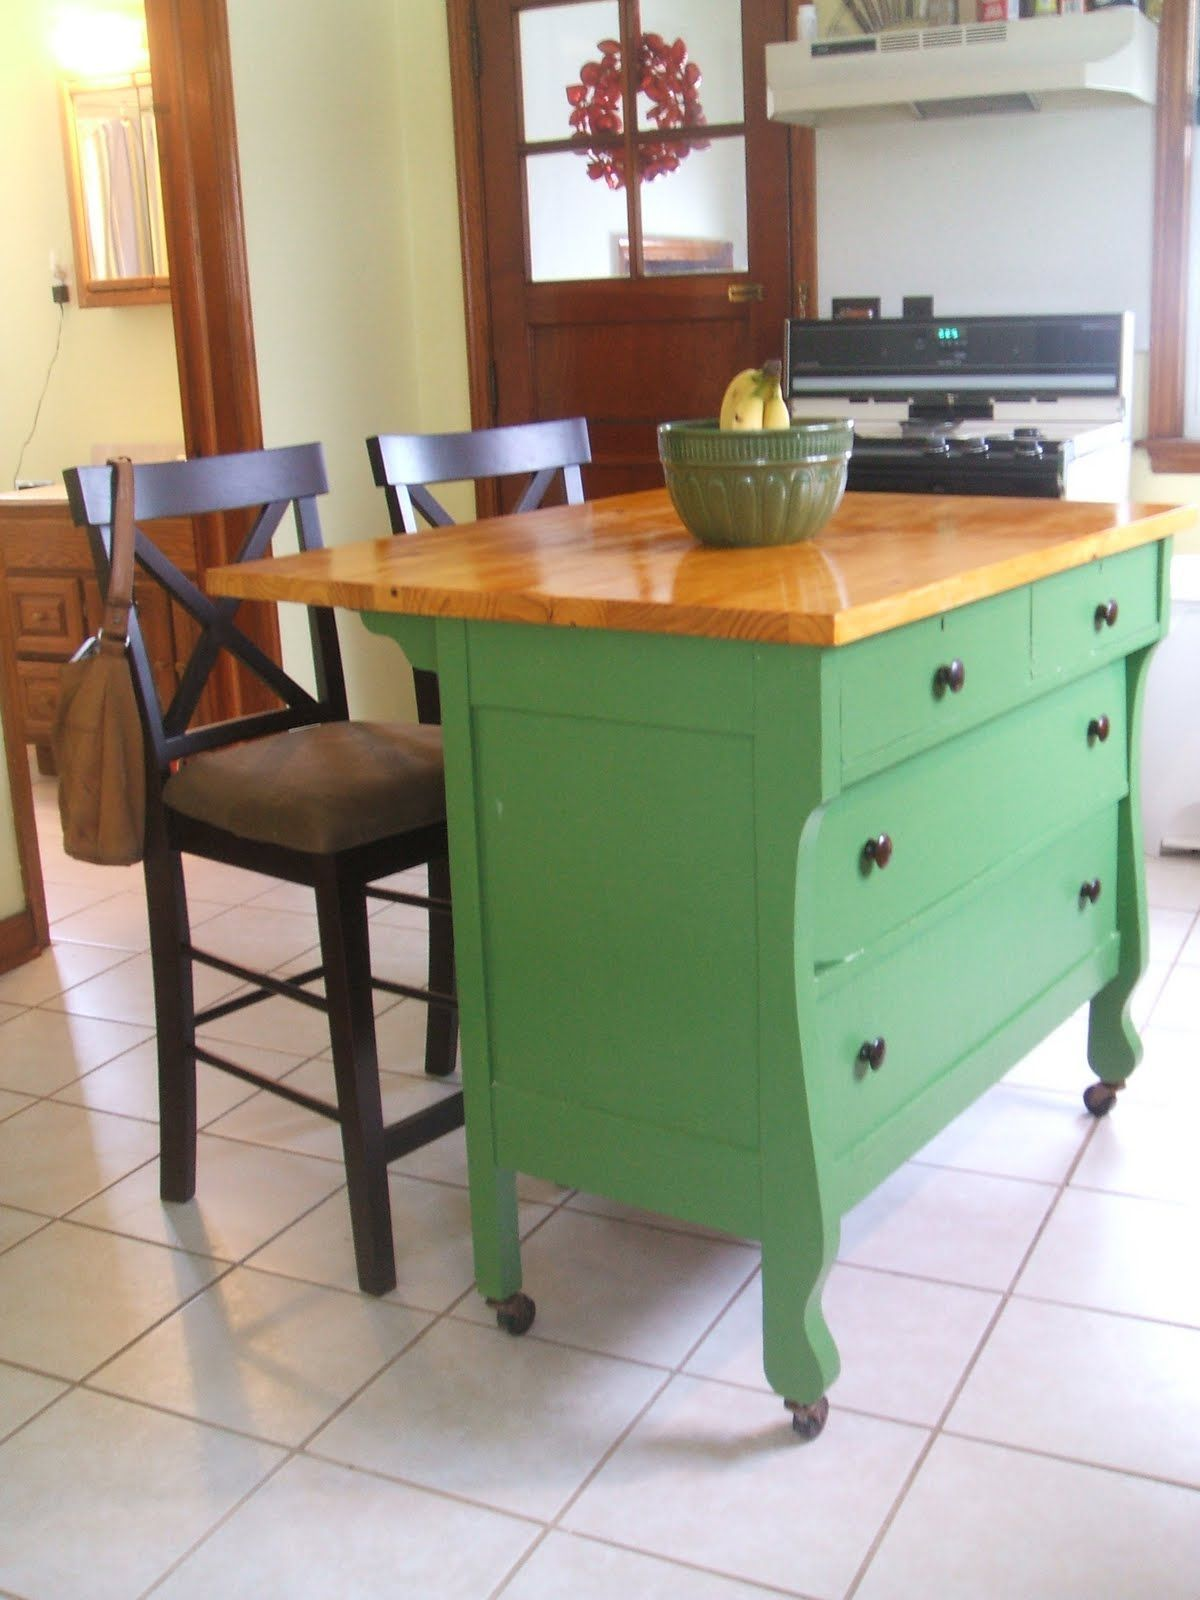 kitchen small and portable kitchen island ideas diy cute and green kitchen island idea made on kitchen island ideas india id=77032